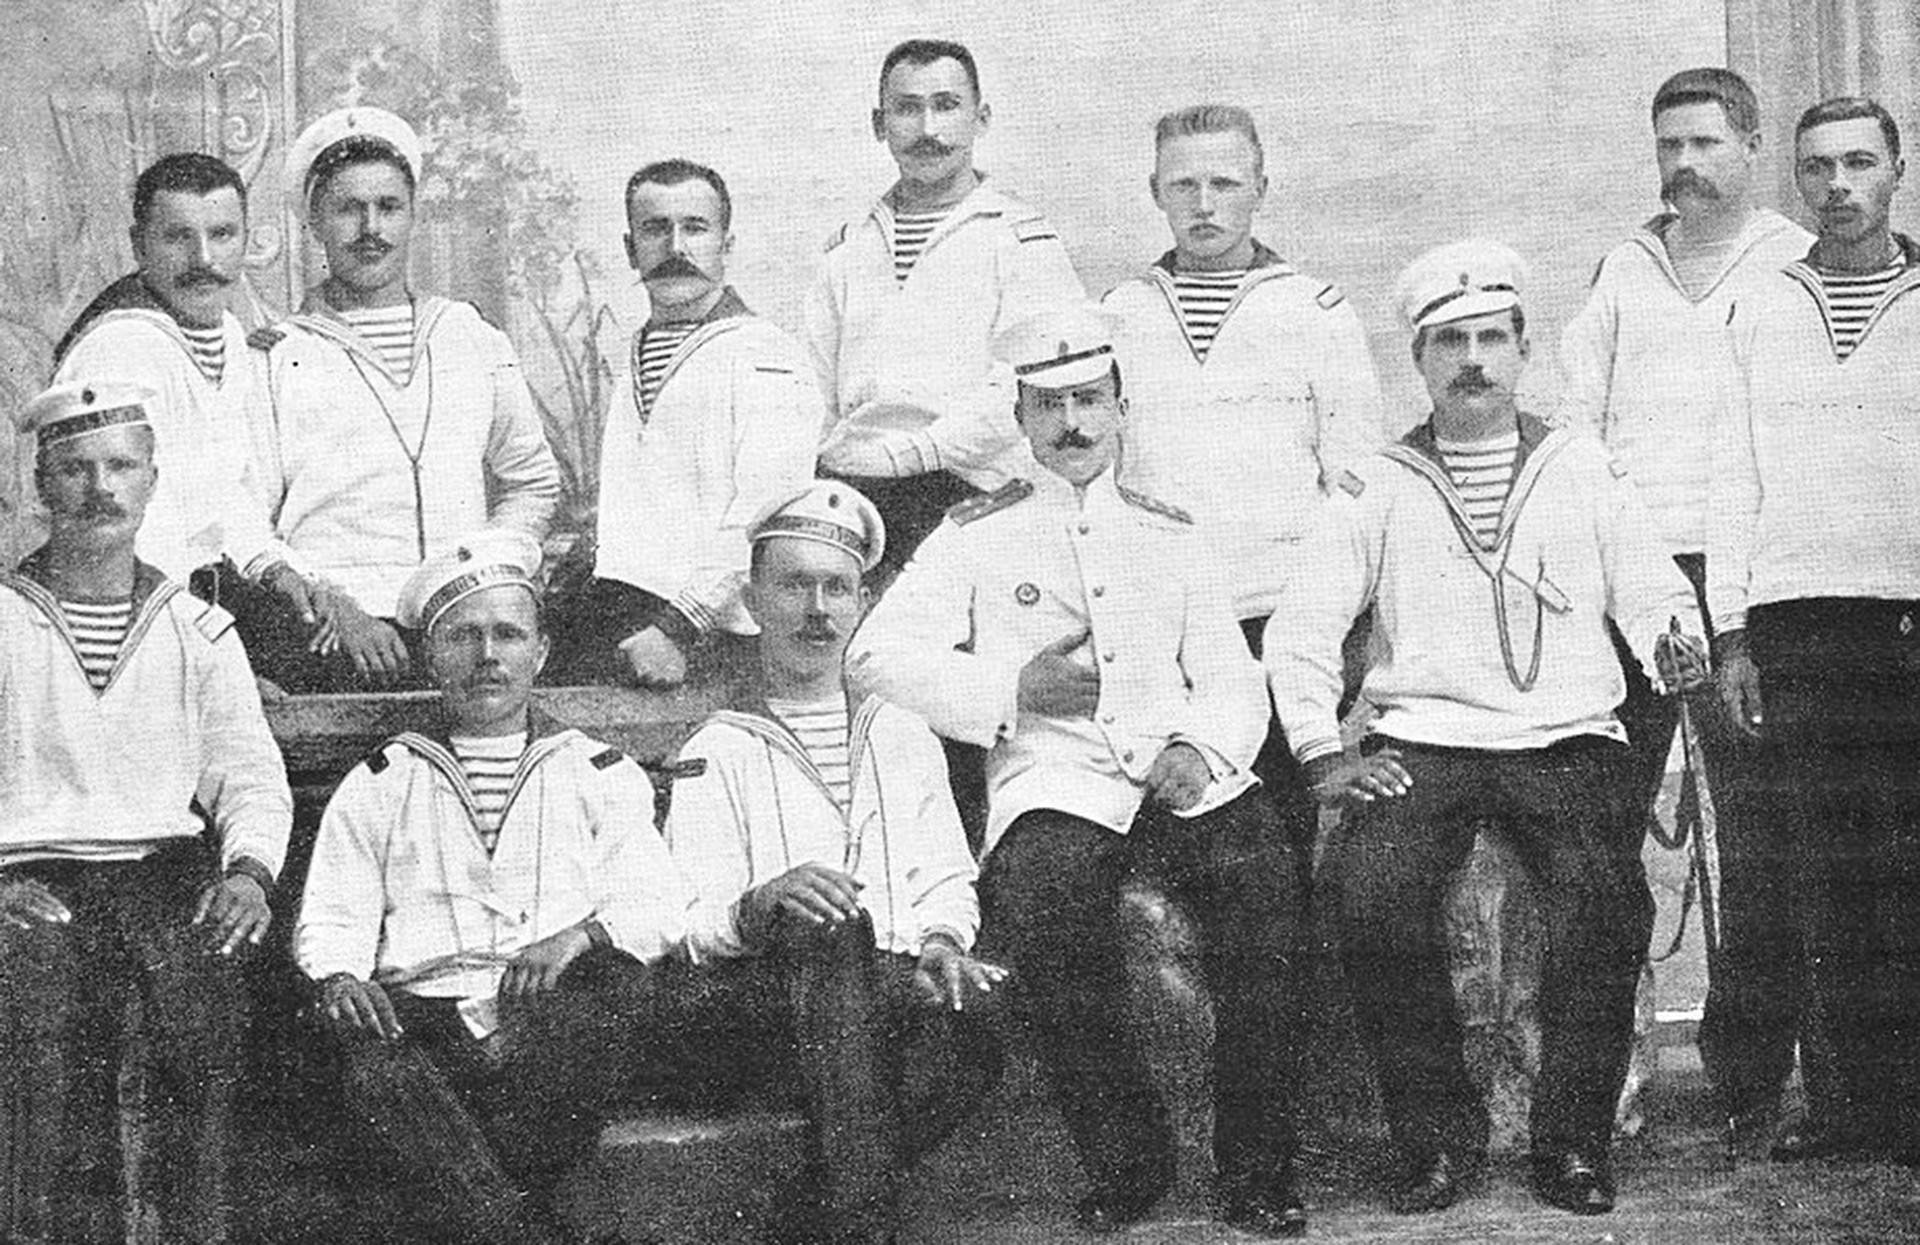 Some of the crew of the battleship Potemkin. The lieutenant in the center of the group was one of the officers killed by the rebels.